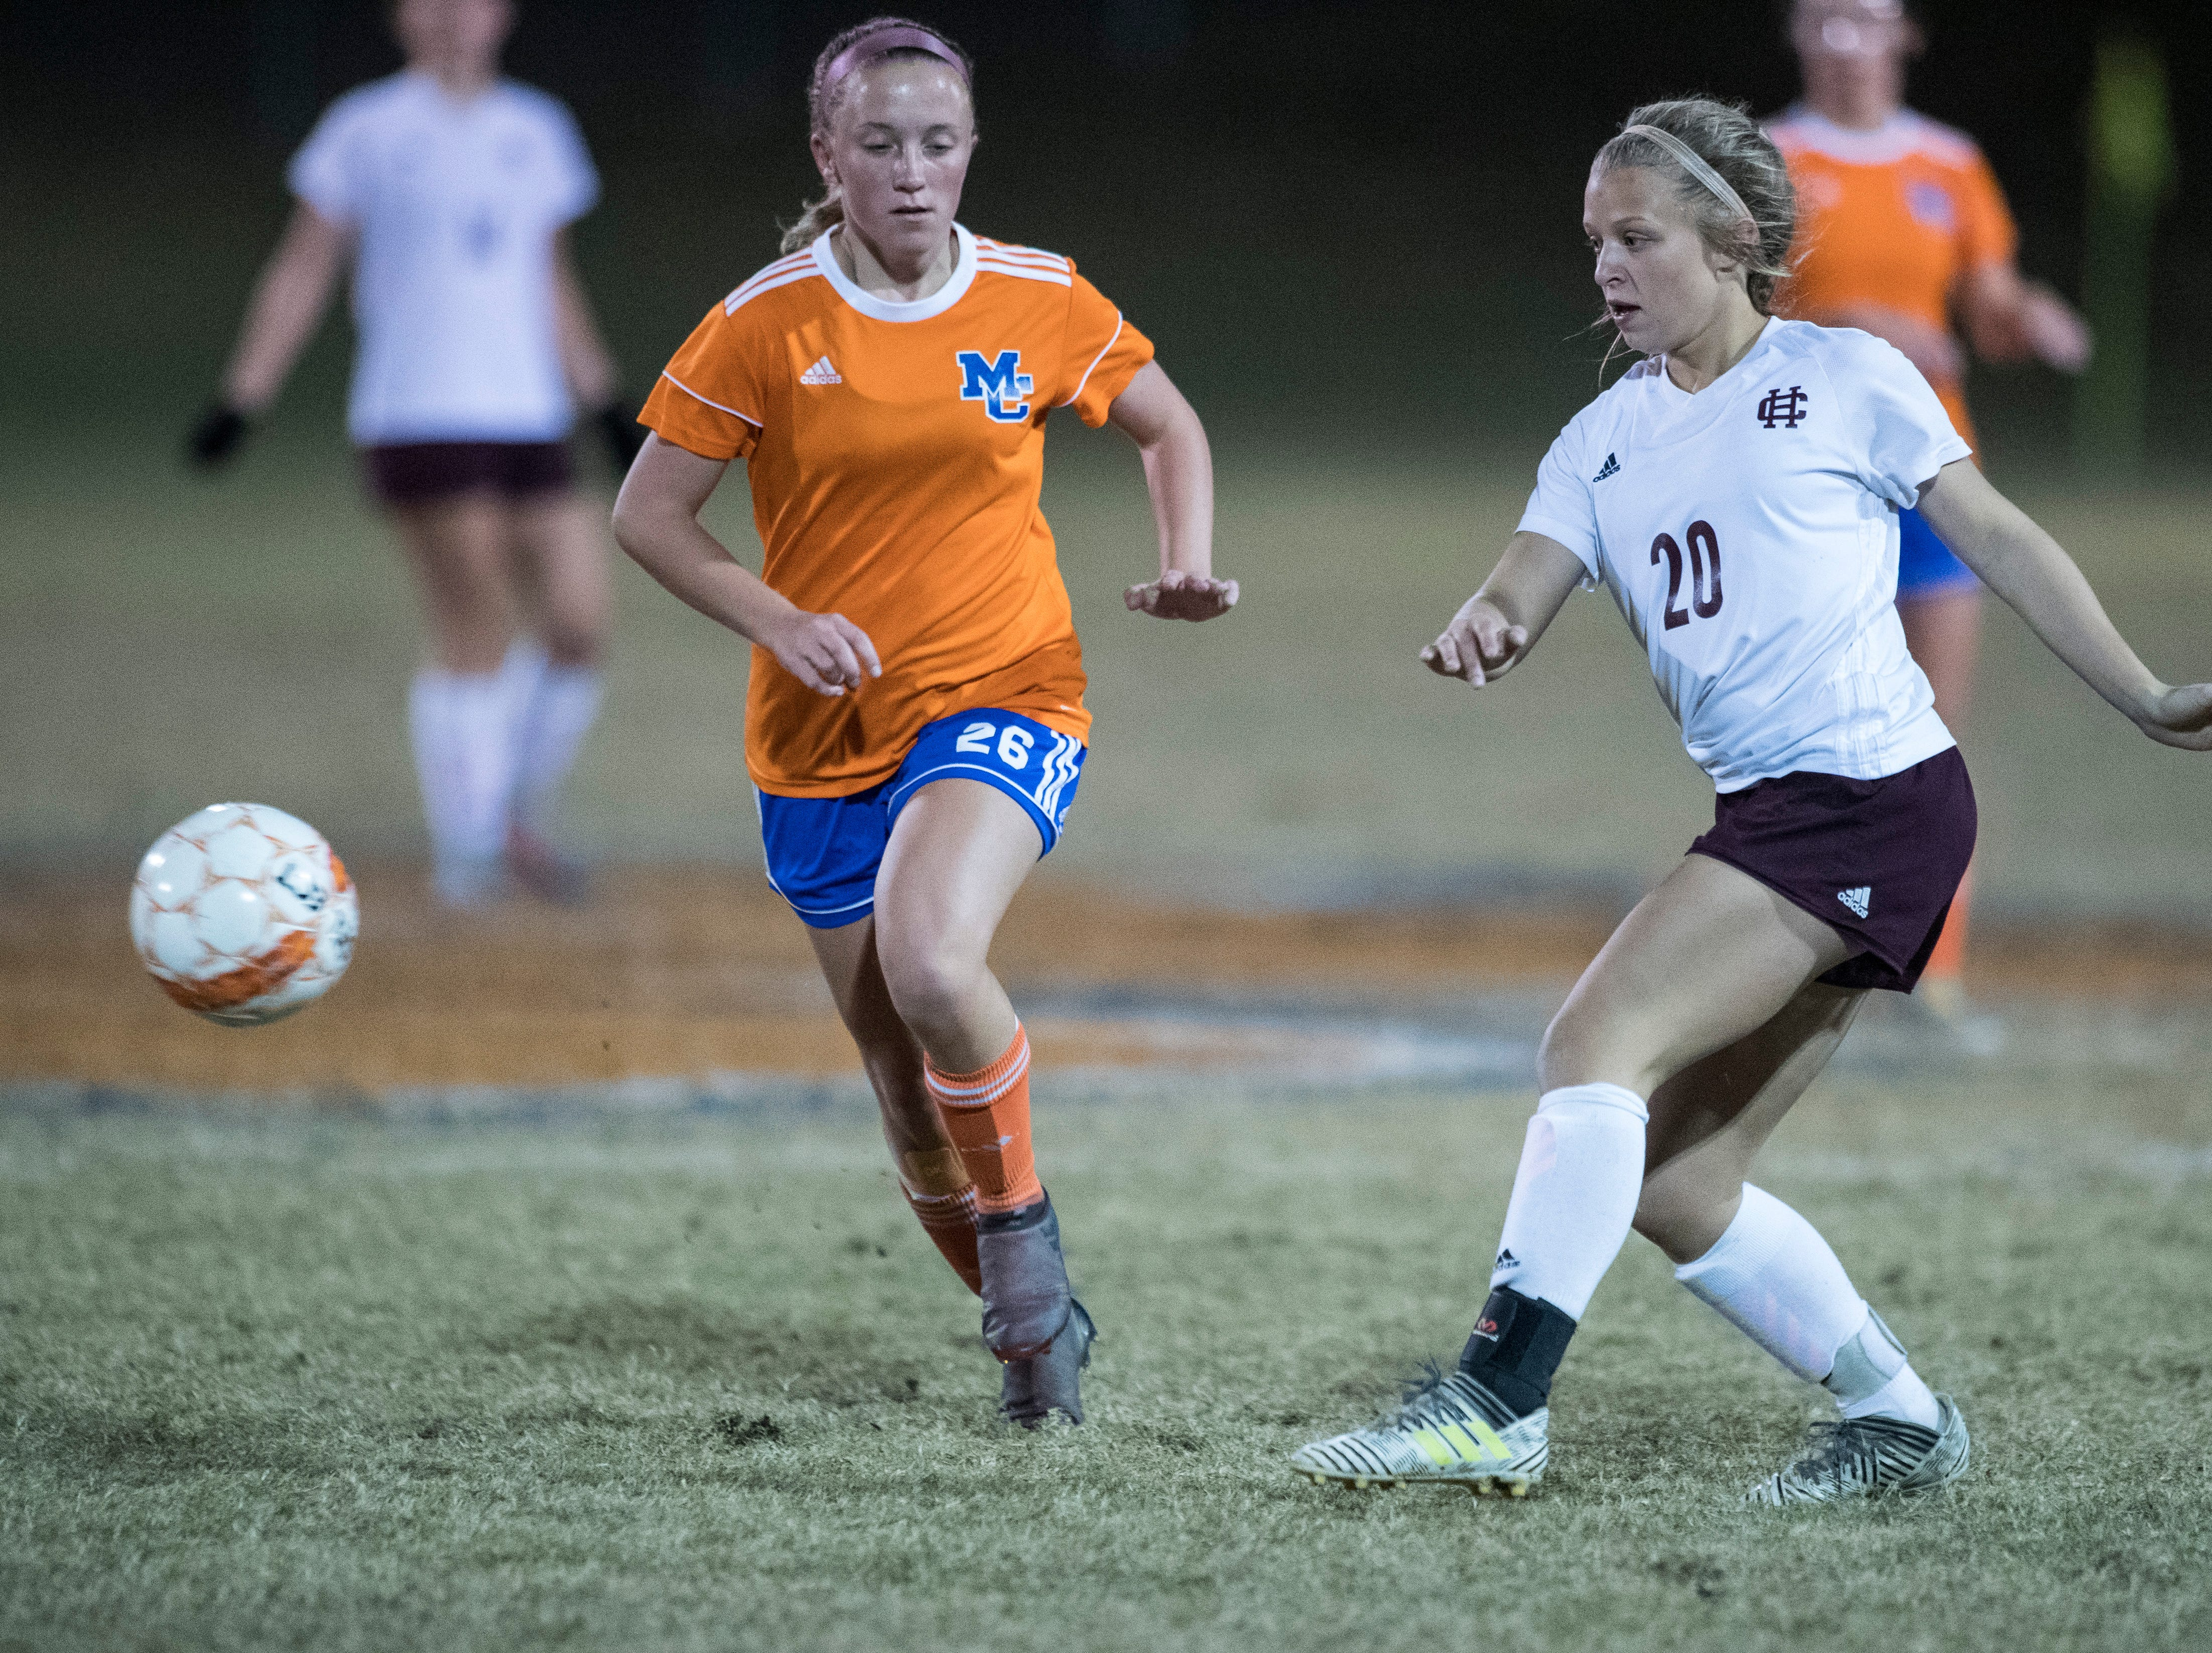 Henderson's Morgan Green (20) passes the ball during the first round of the KHSAA state tournament at Marshall County High School Monday, Oct. 23, 2018.